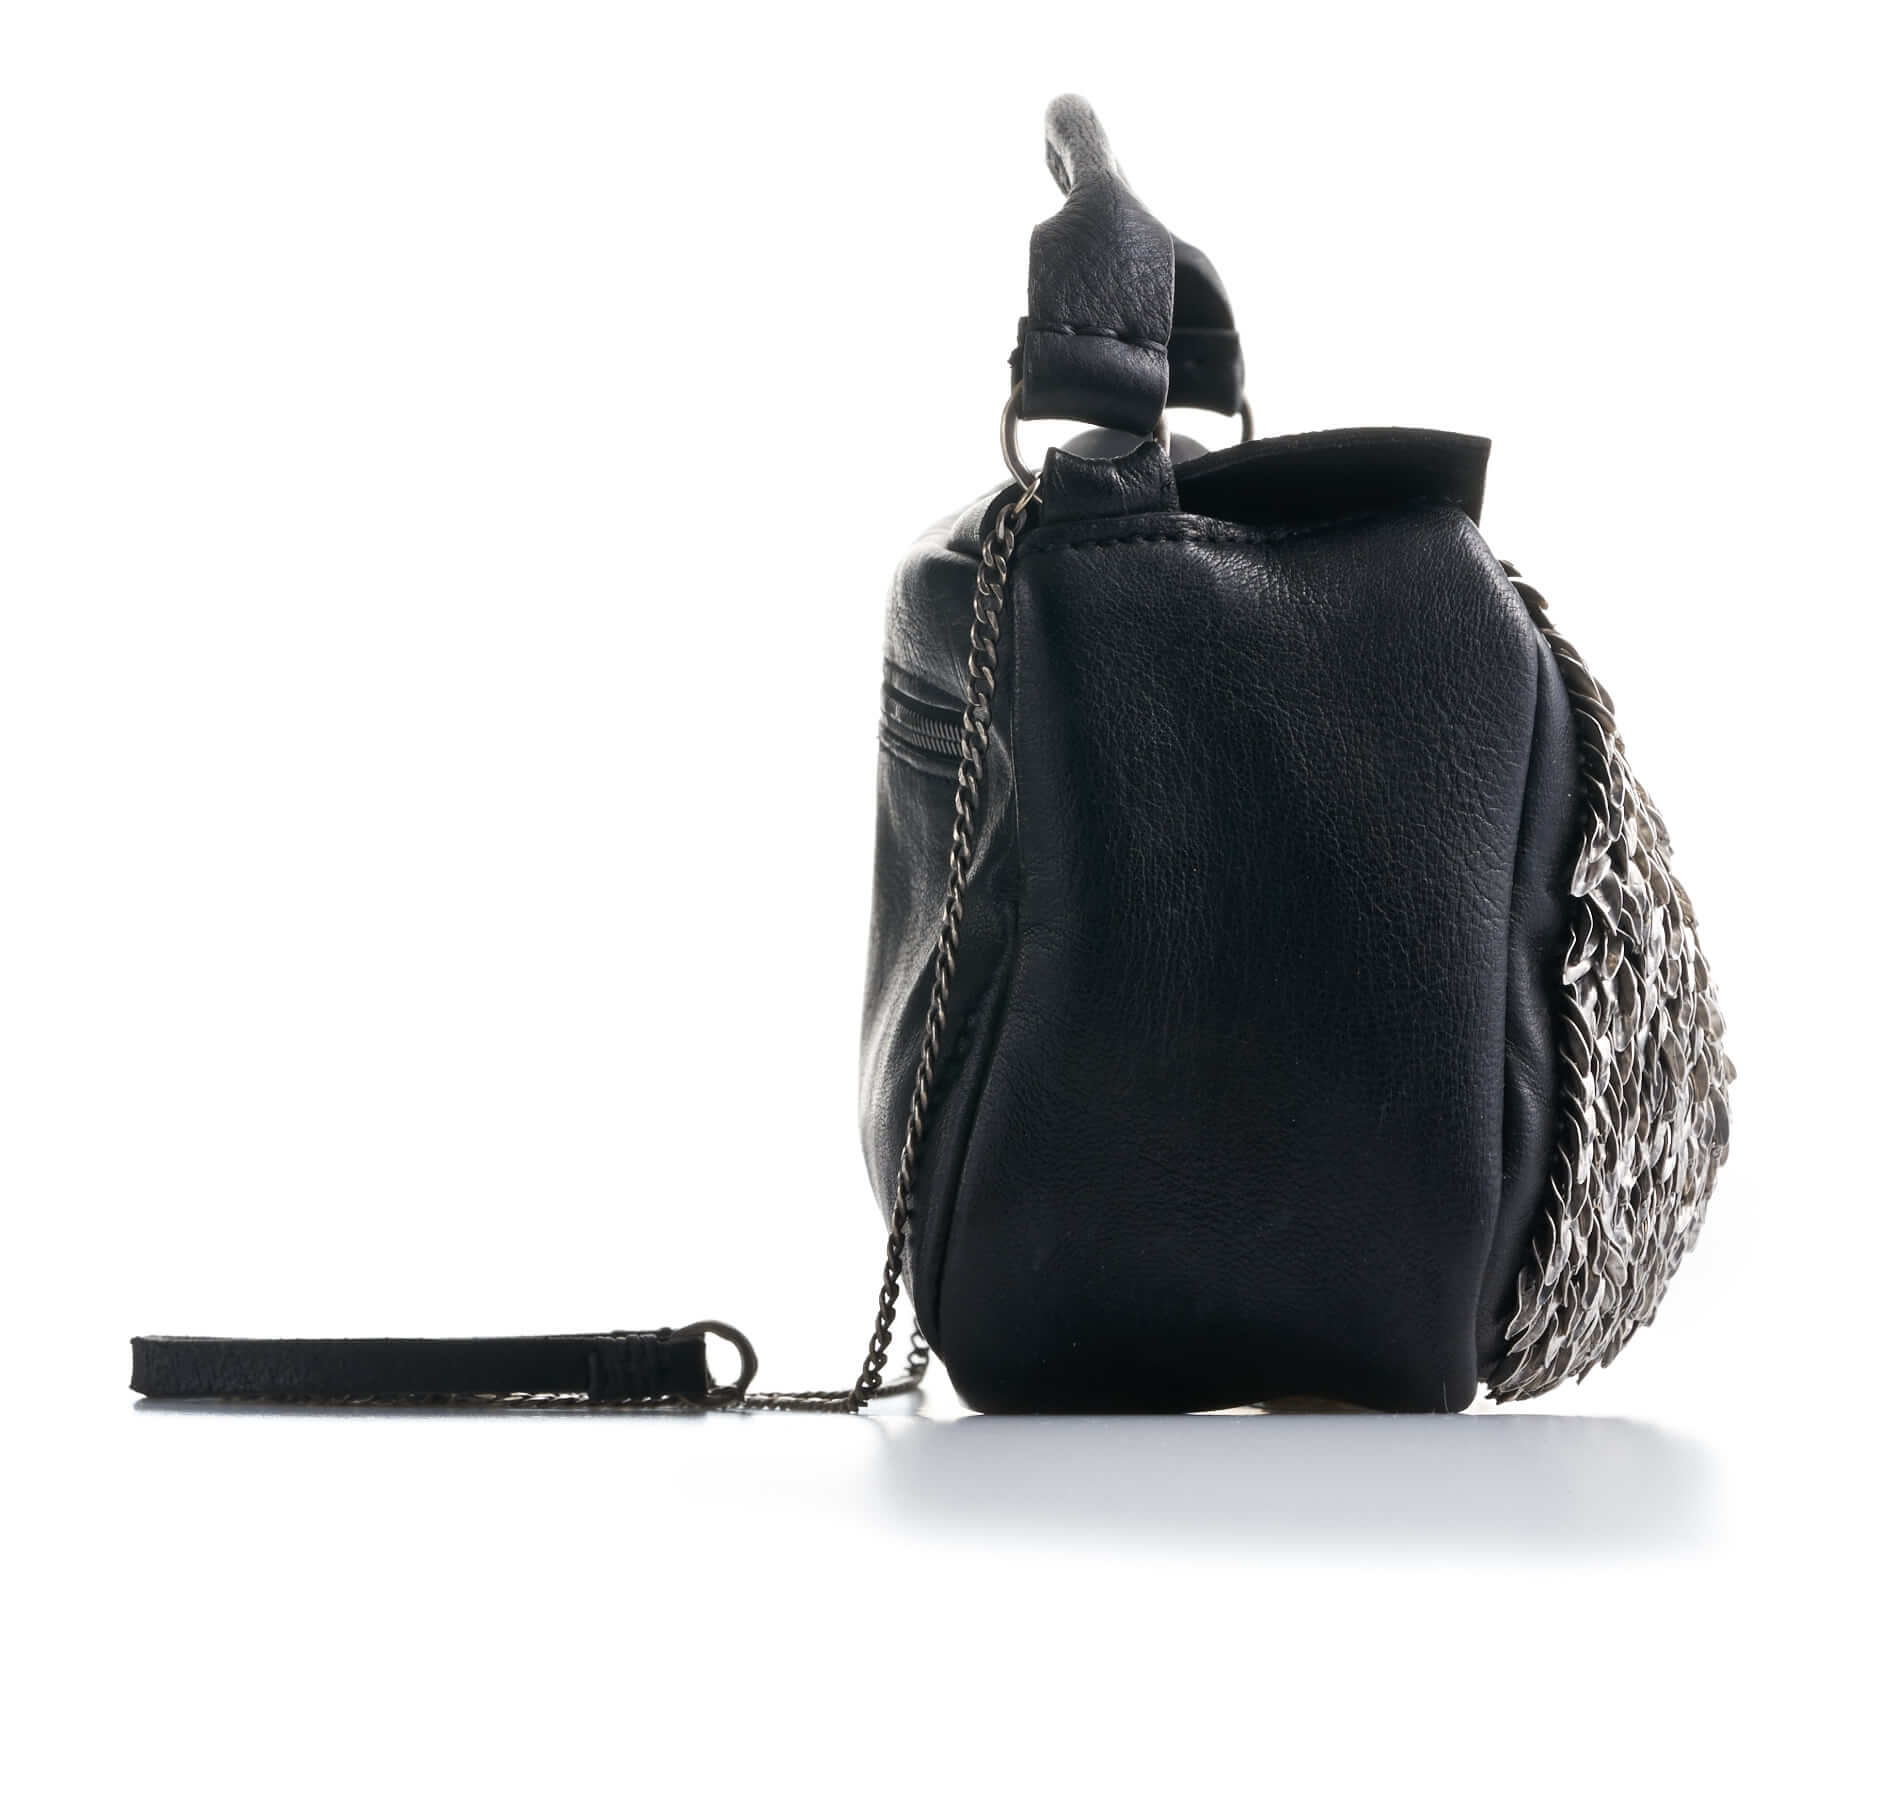 DANIELE BASTA | leather bag - BABA MIGNON FOGLIE wearing 2